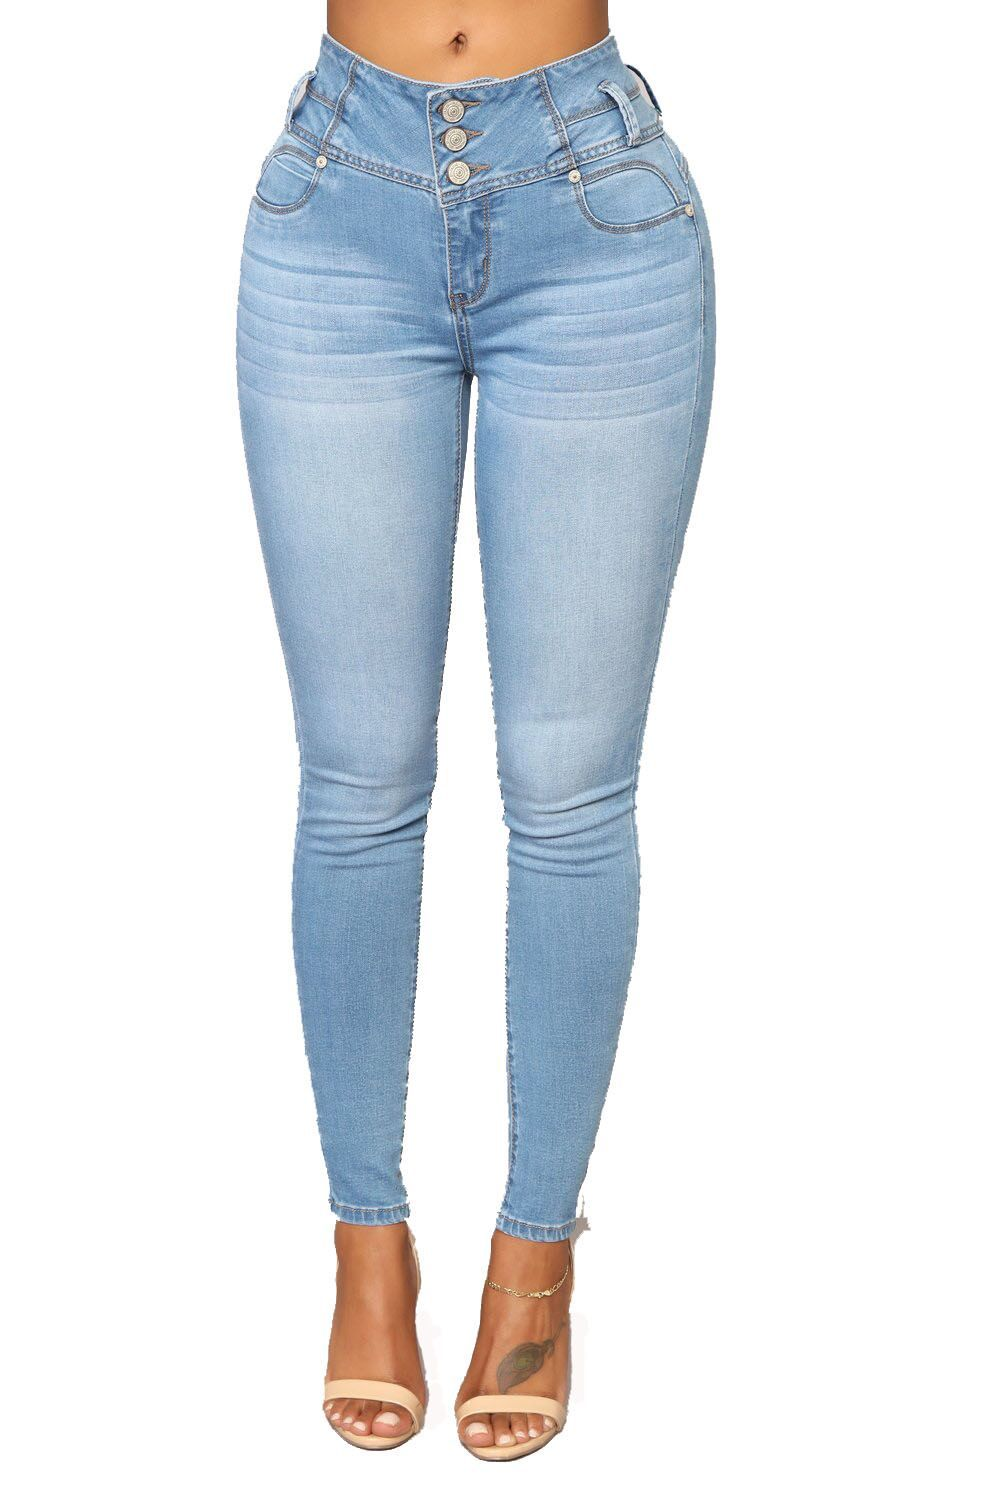 Slim Fit Three-Breasted Feet Jeans